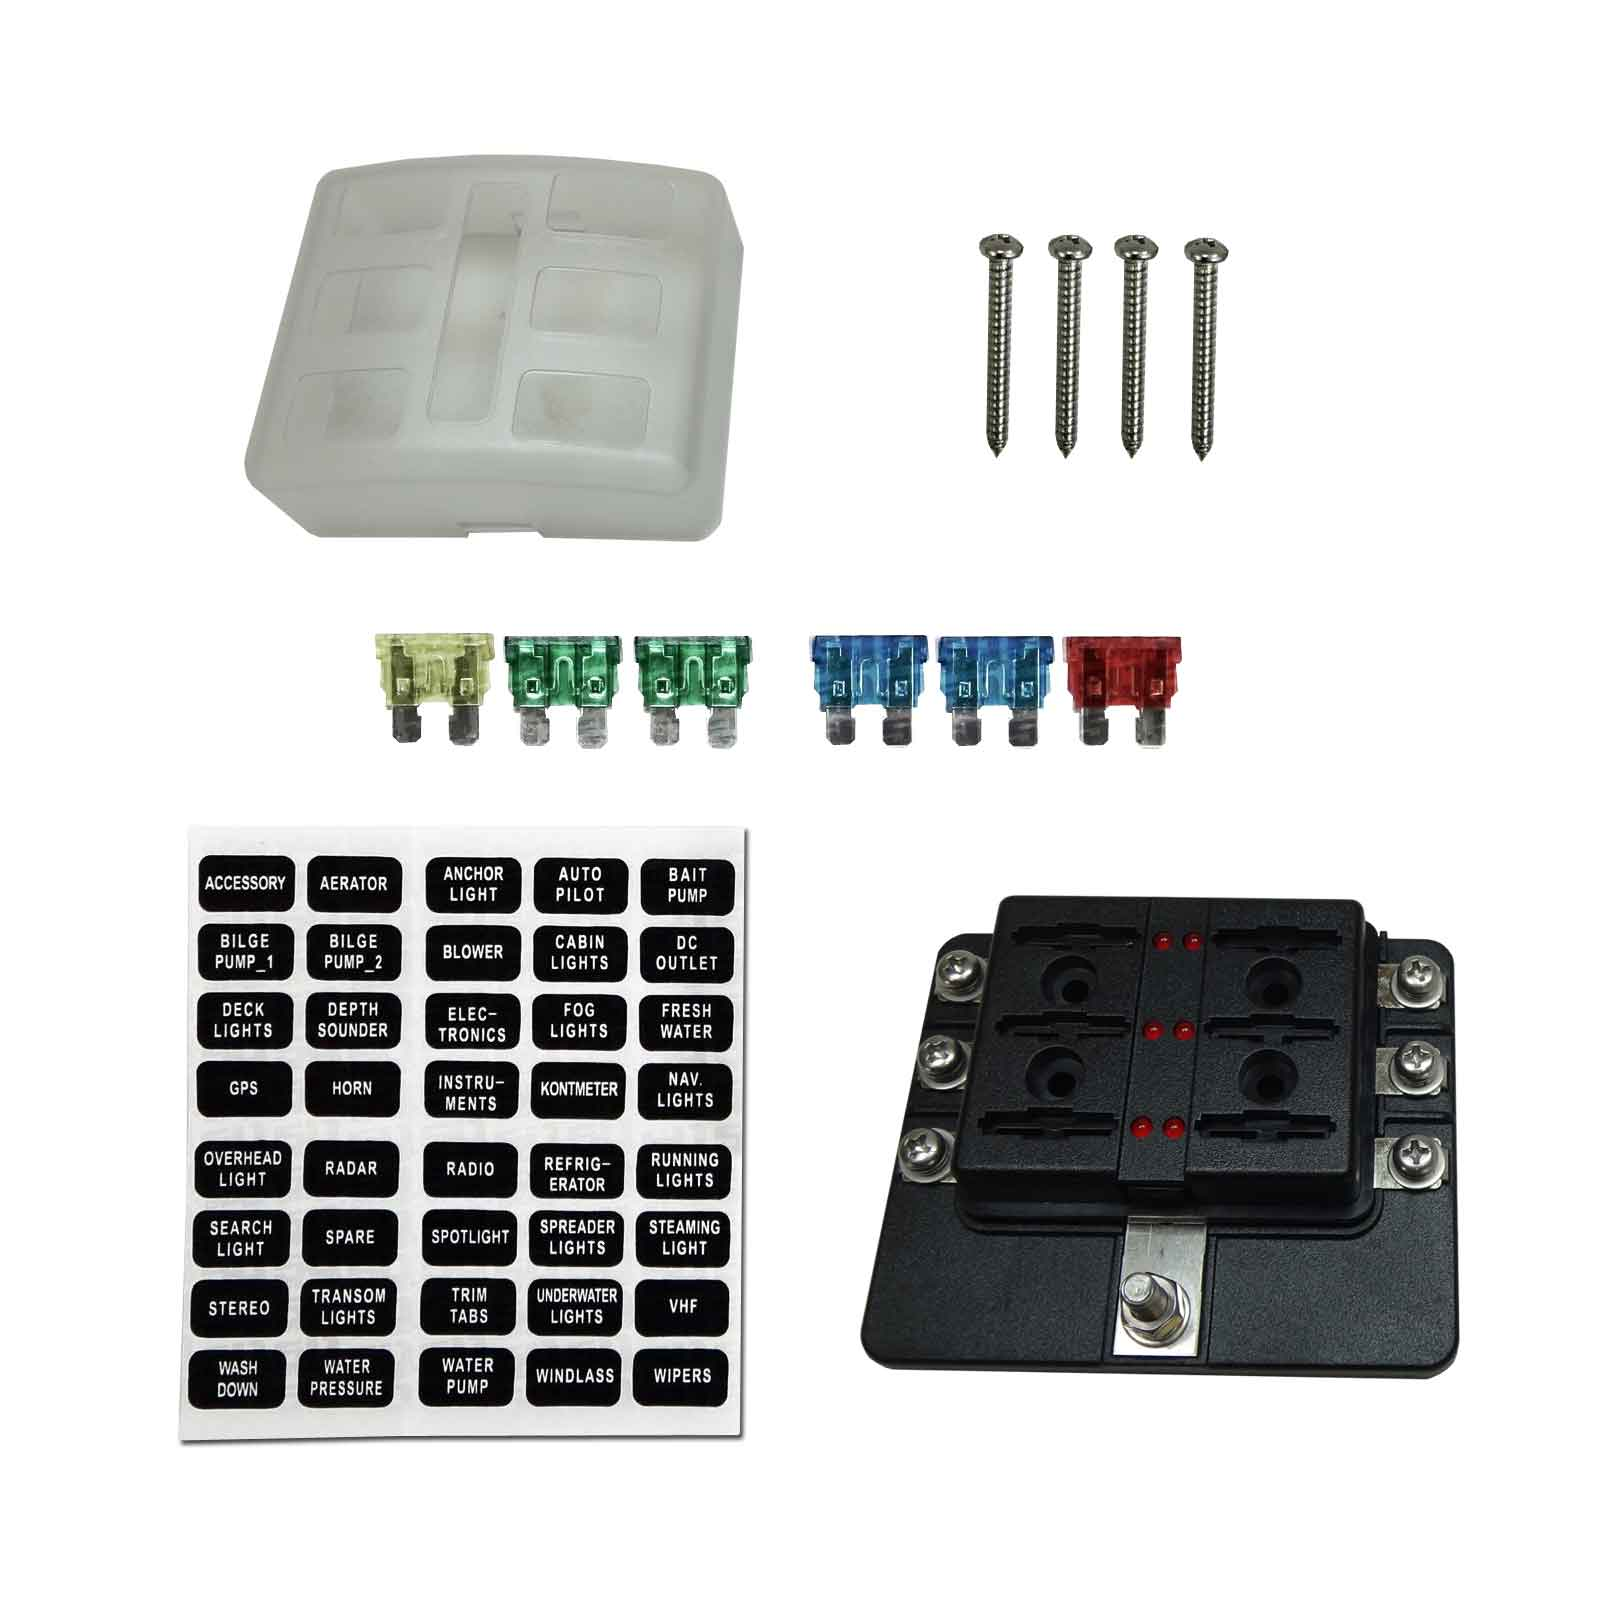 Universal 6 Way Standard 12V Circuit Blade Fuse Box with LED Indicators and  Accessories Designed to